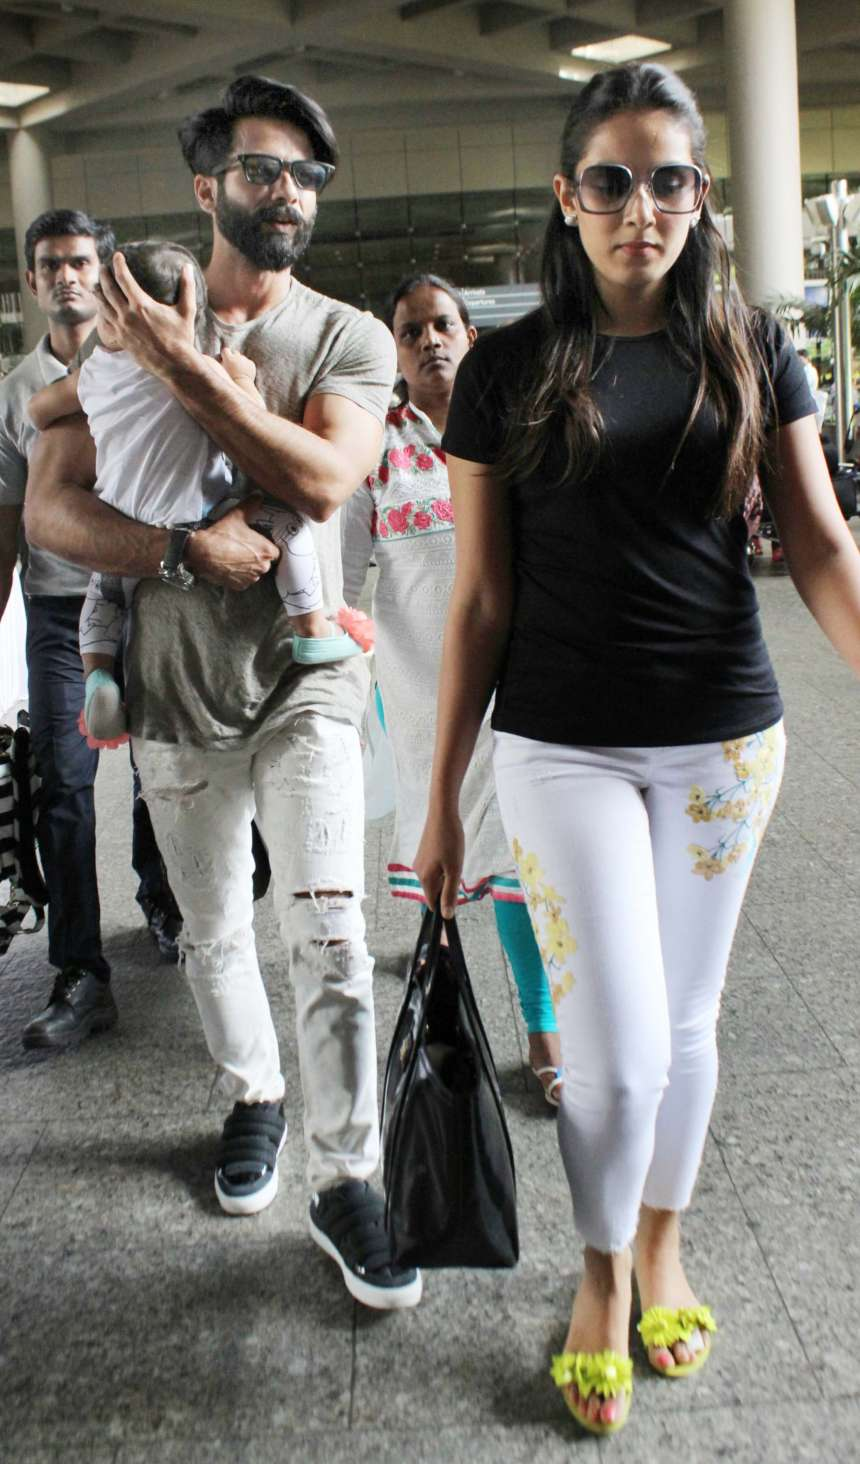 Mira Rajput was seen in casual attire with black basic tee and white denim. Her neon-green flipflop gave a quirkly look to the entire outfit. Her superstar husband, Shahid Kapoor was also carrying a casual look where he wore grey t-shirt and distressed denims along with sneakers.